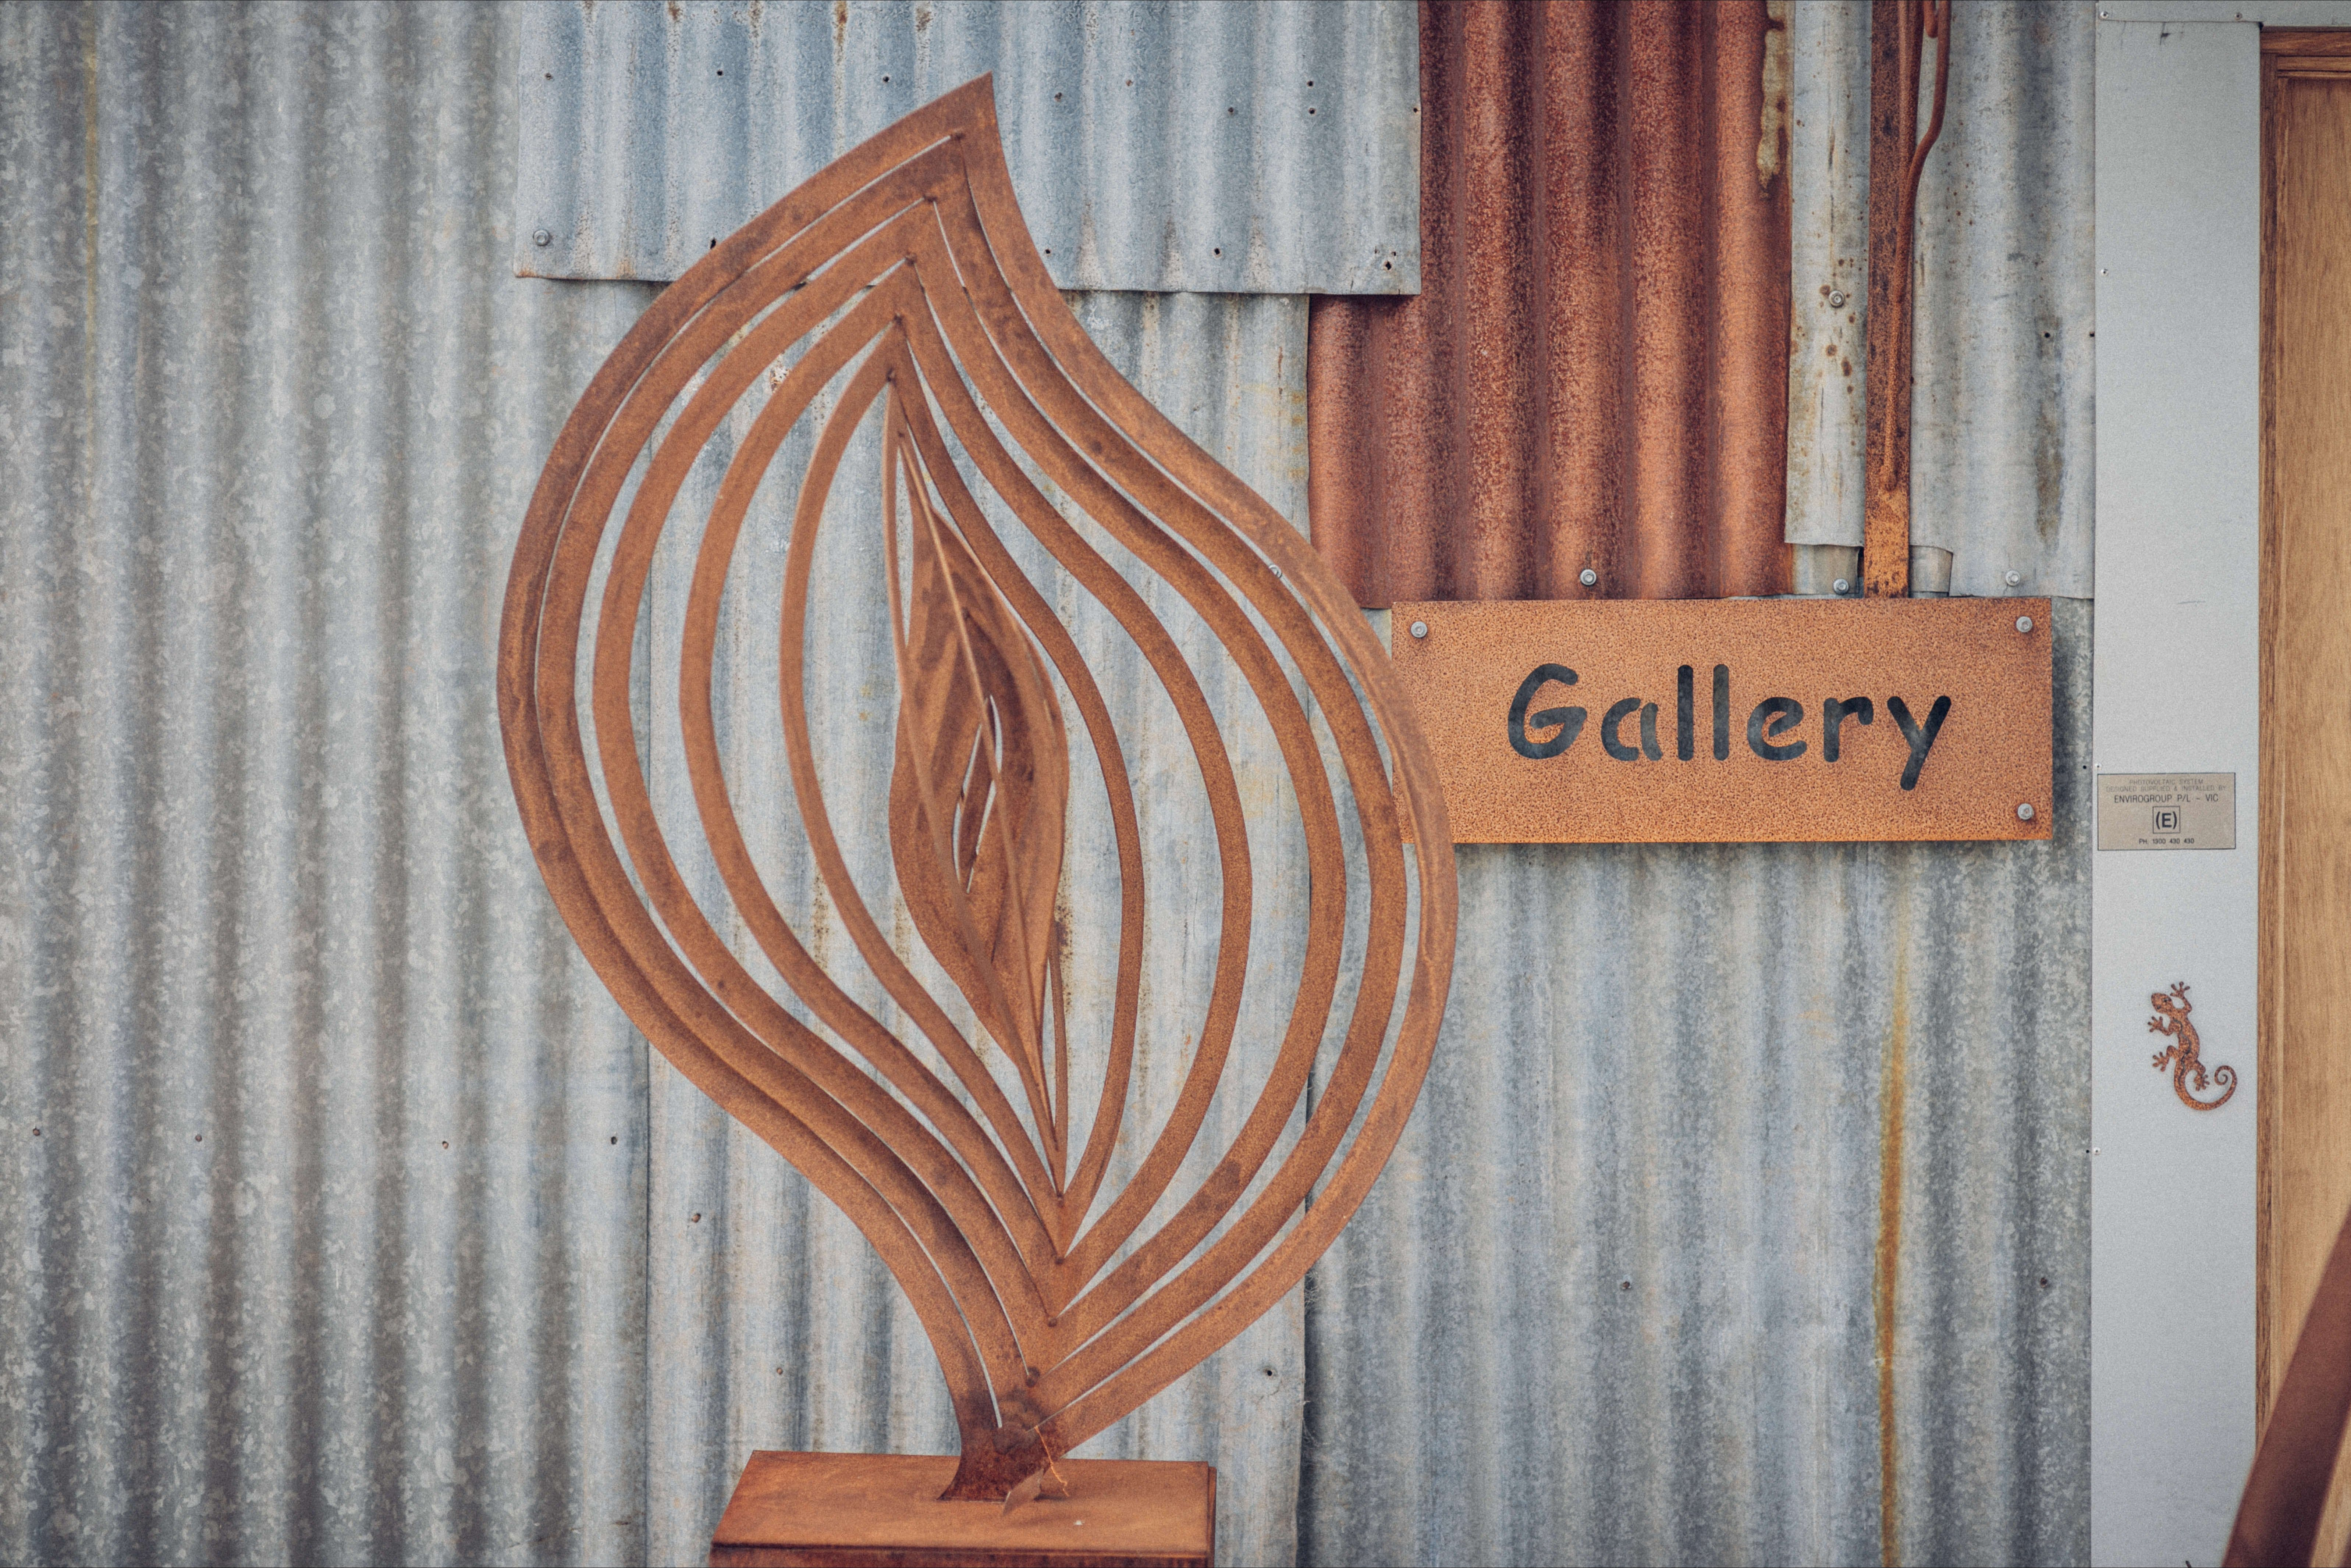 Overwrought Sculpture Garden and Gallery - VIC Tourism